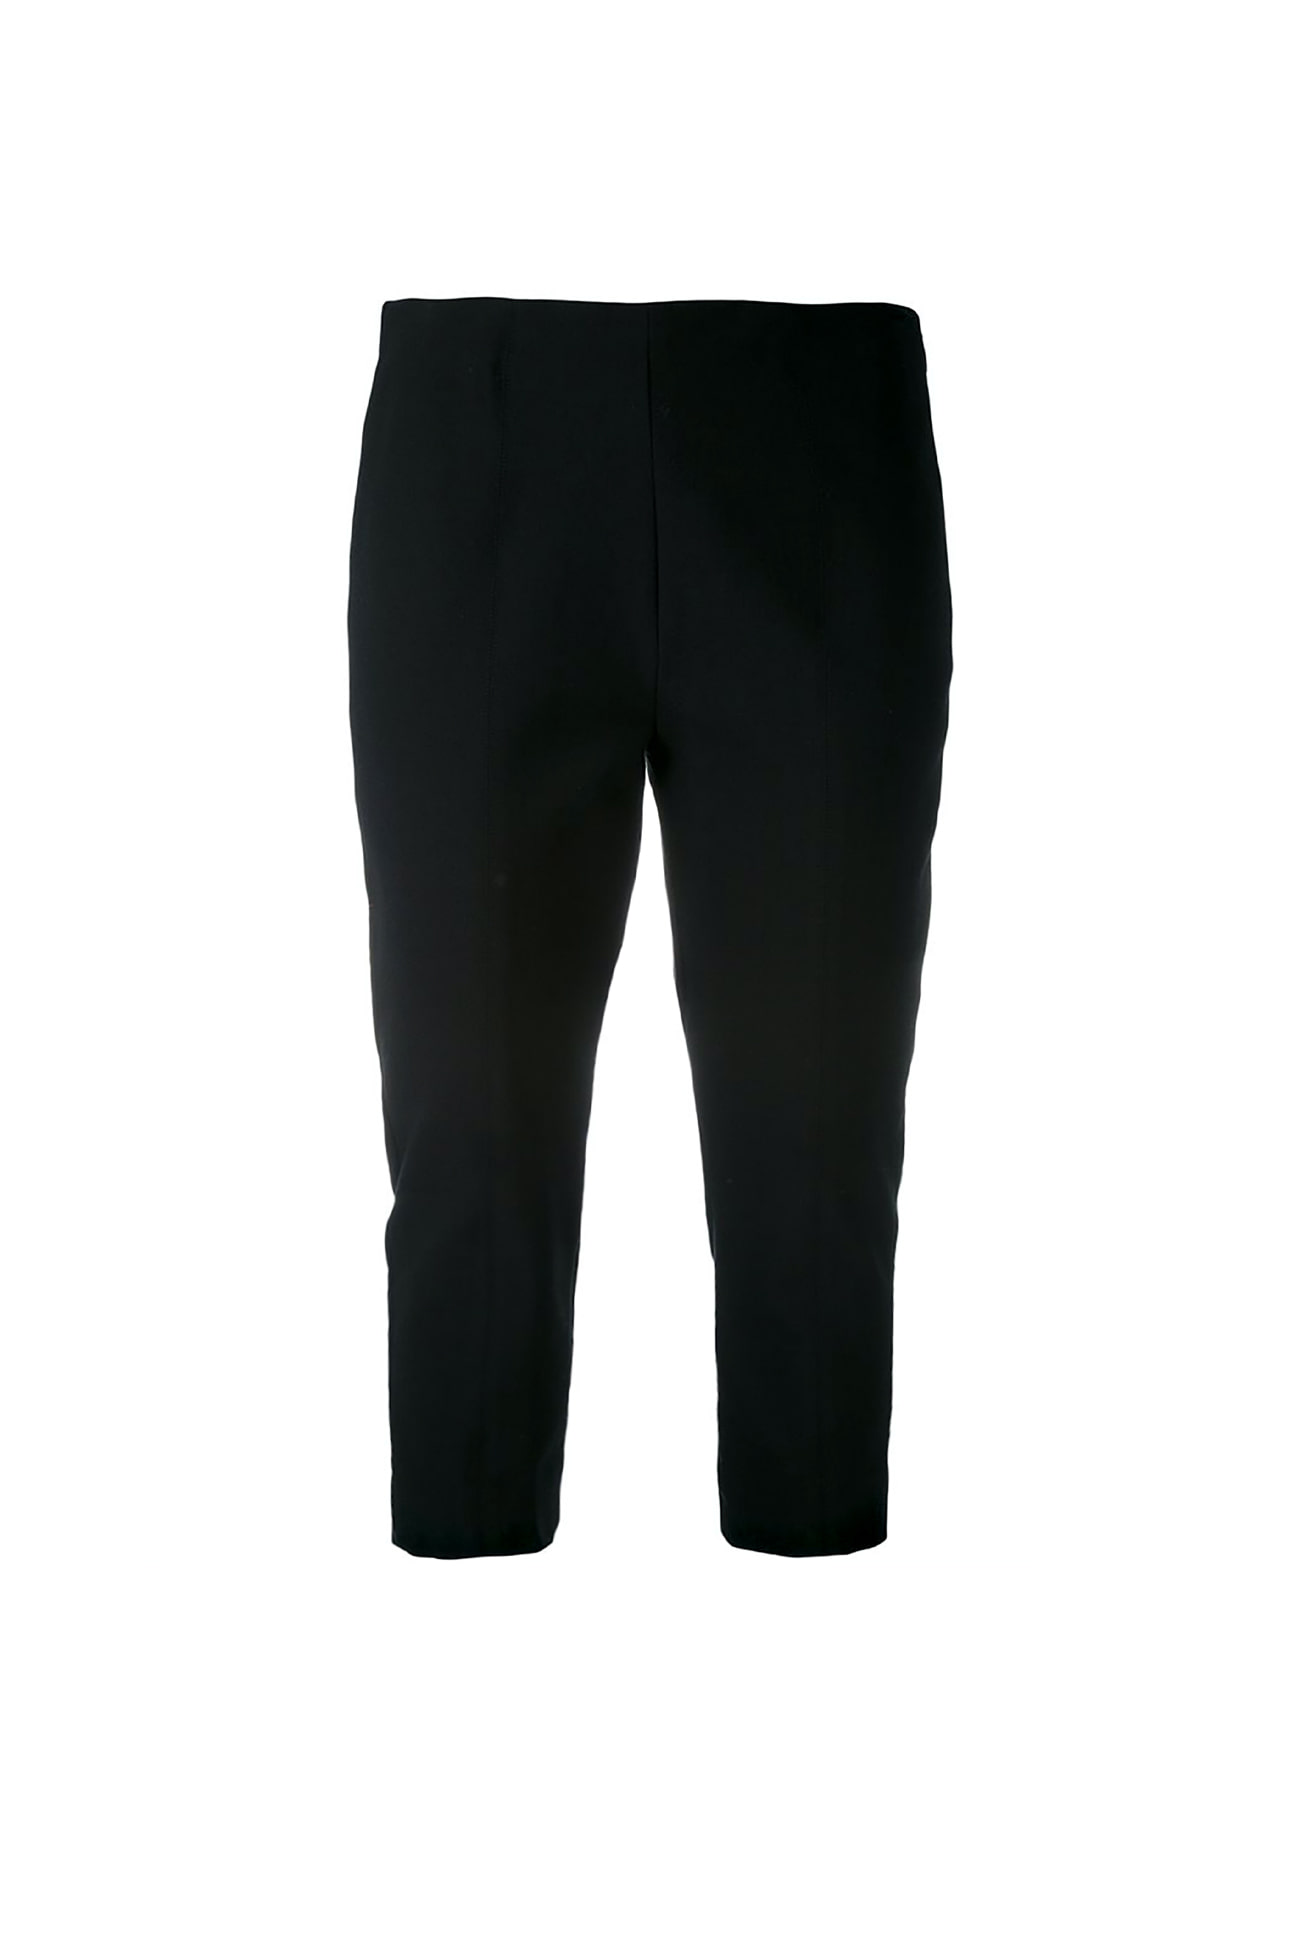 ESSENTIAL - BLACK cropped leg trousers